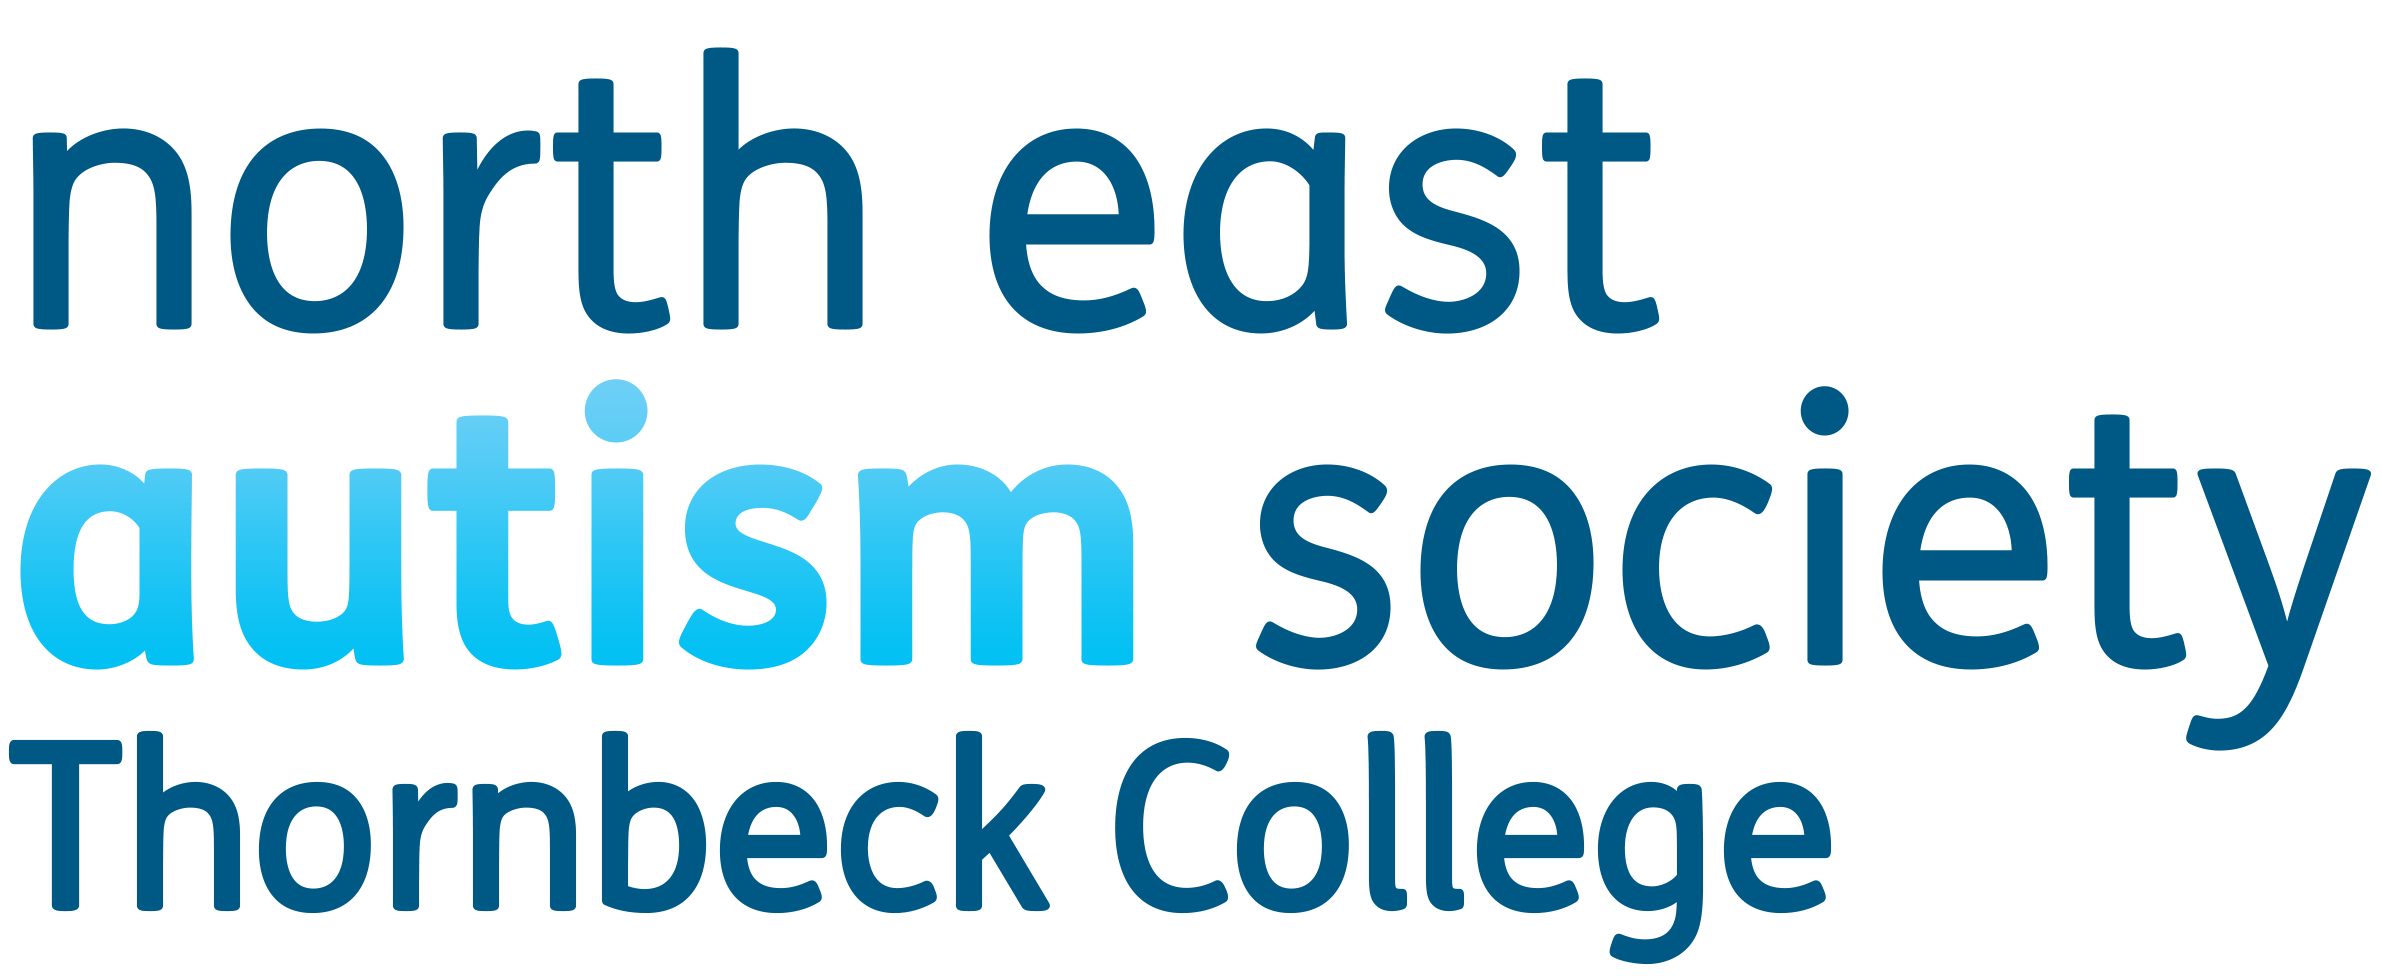 The logo of Thornbeck College - North East Autism Society